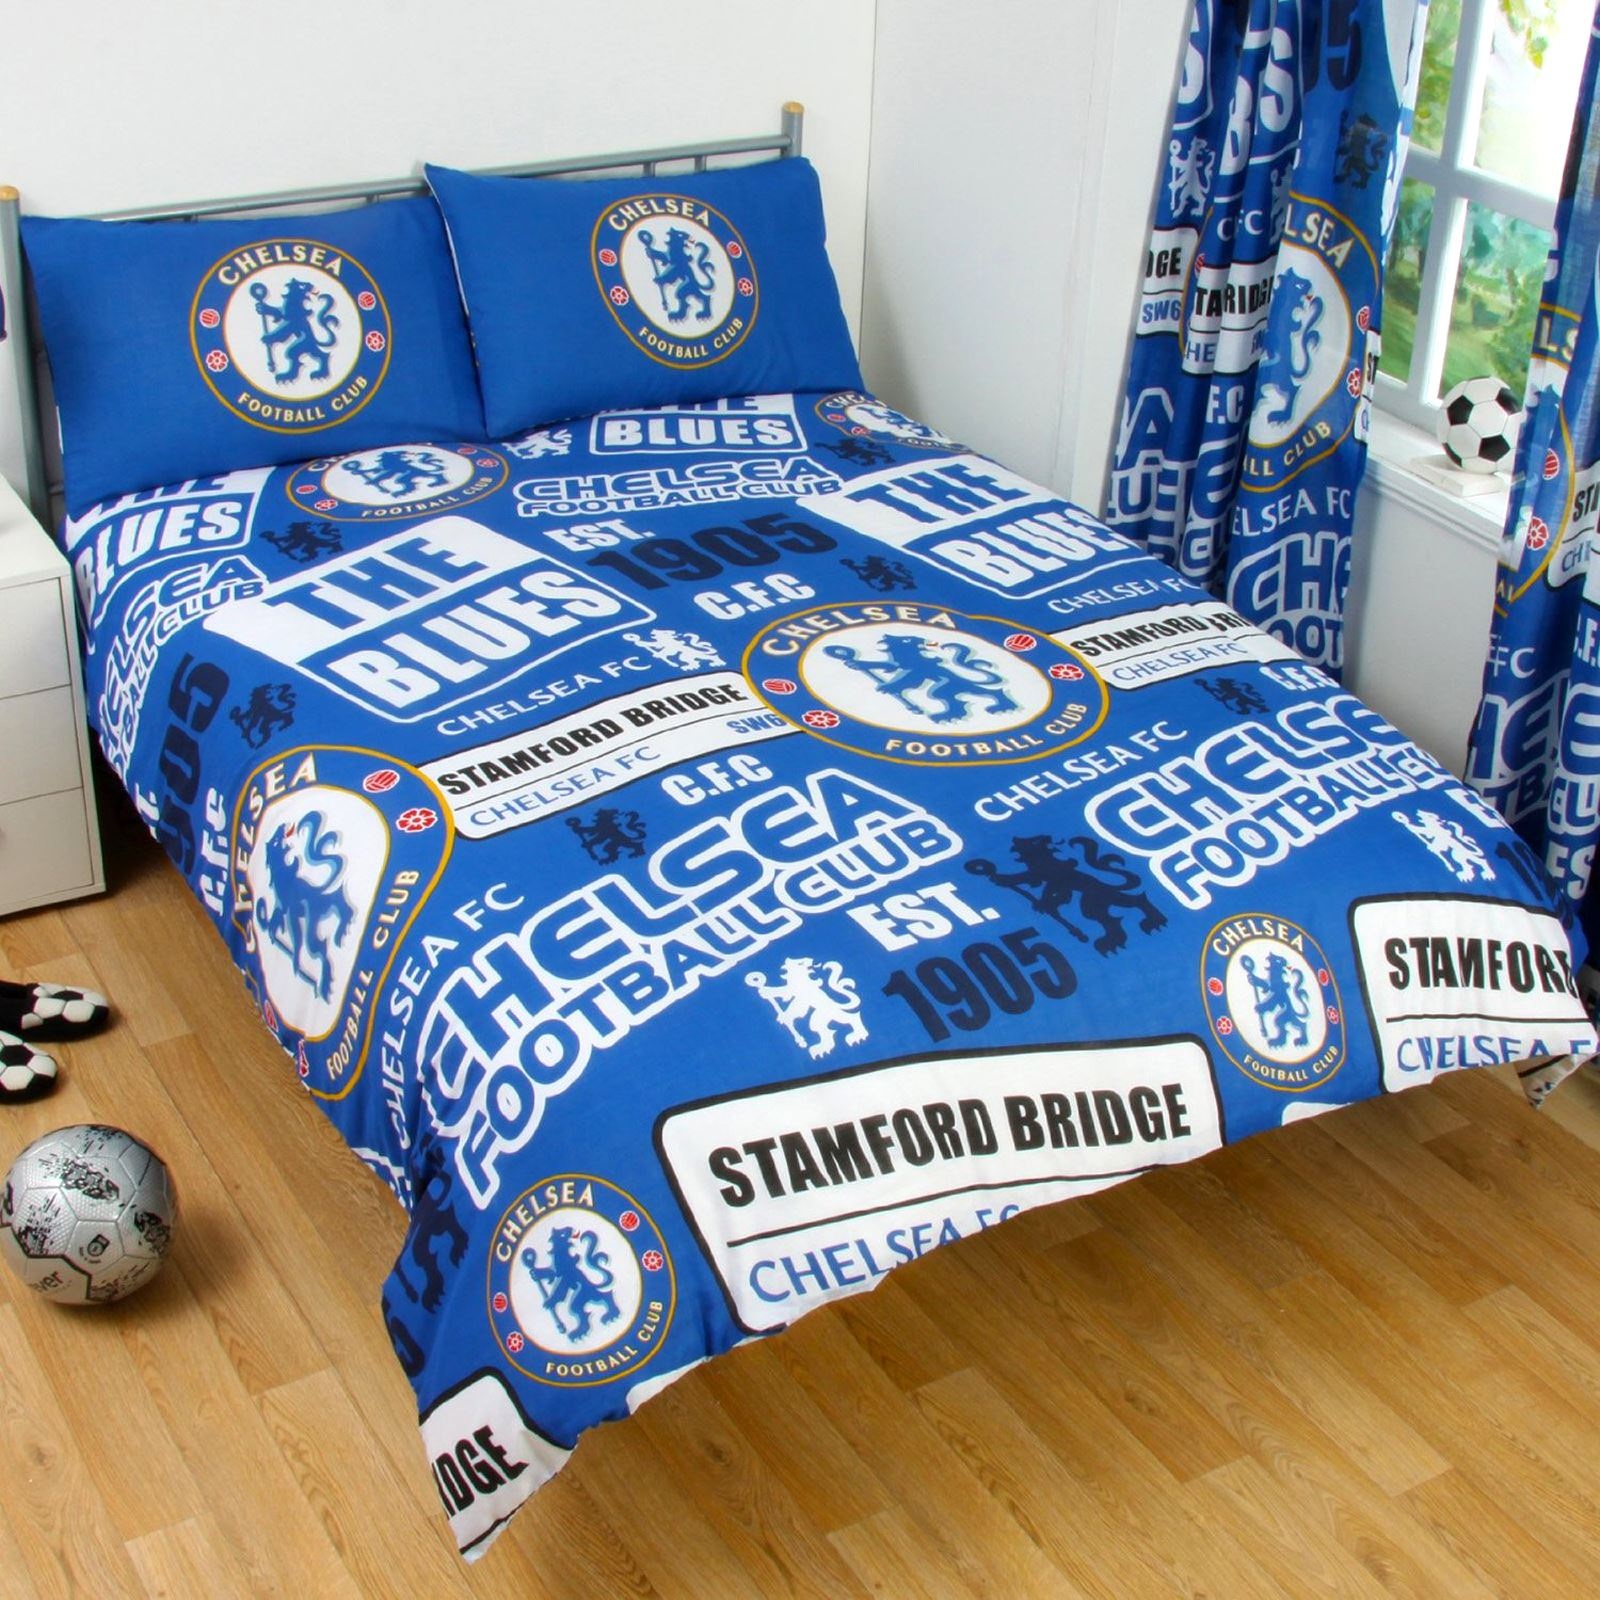 official chelsea football bedding duvet cover sets boys